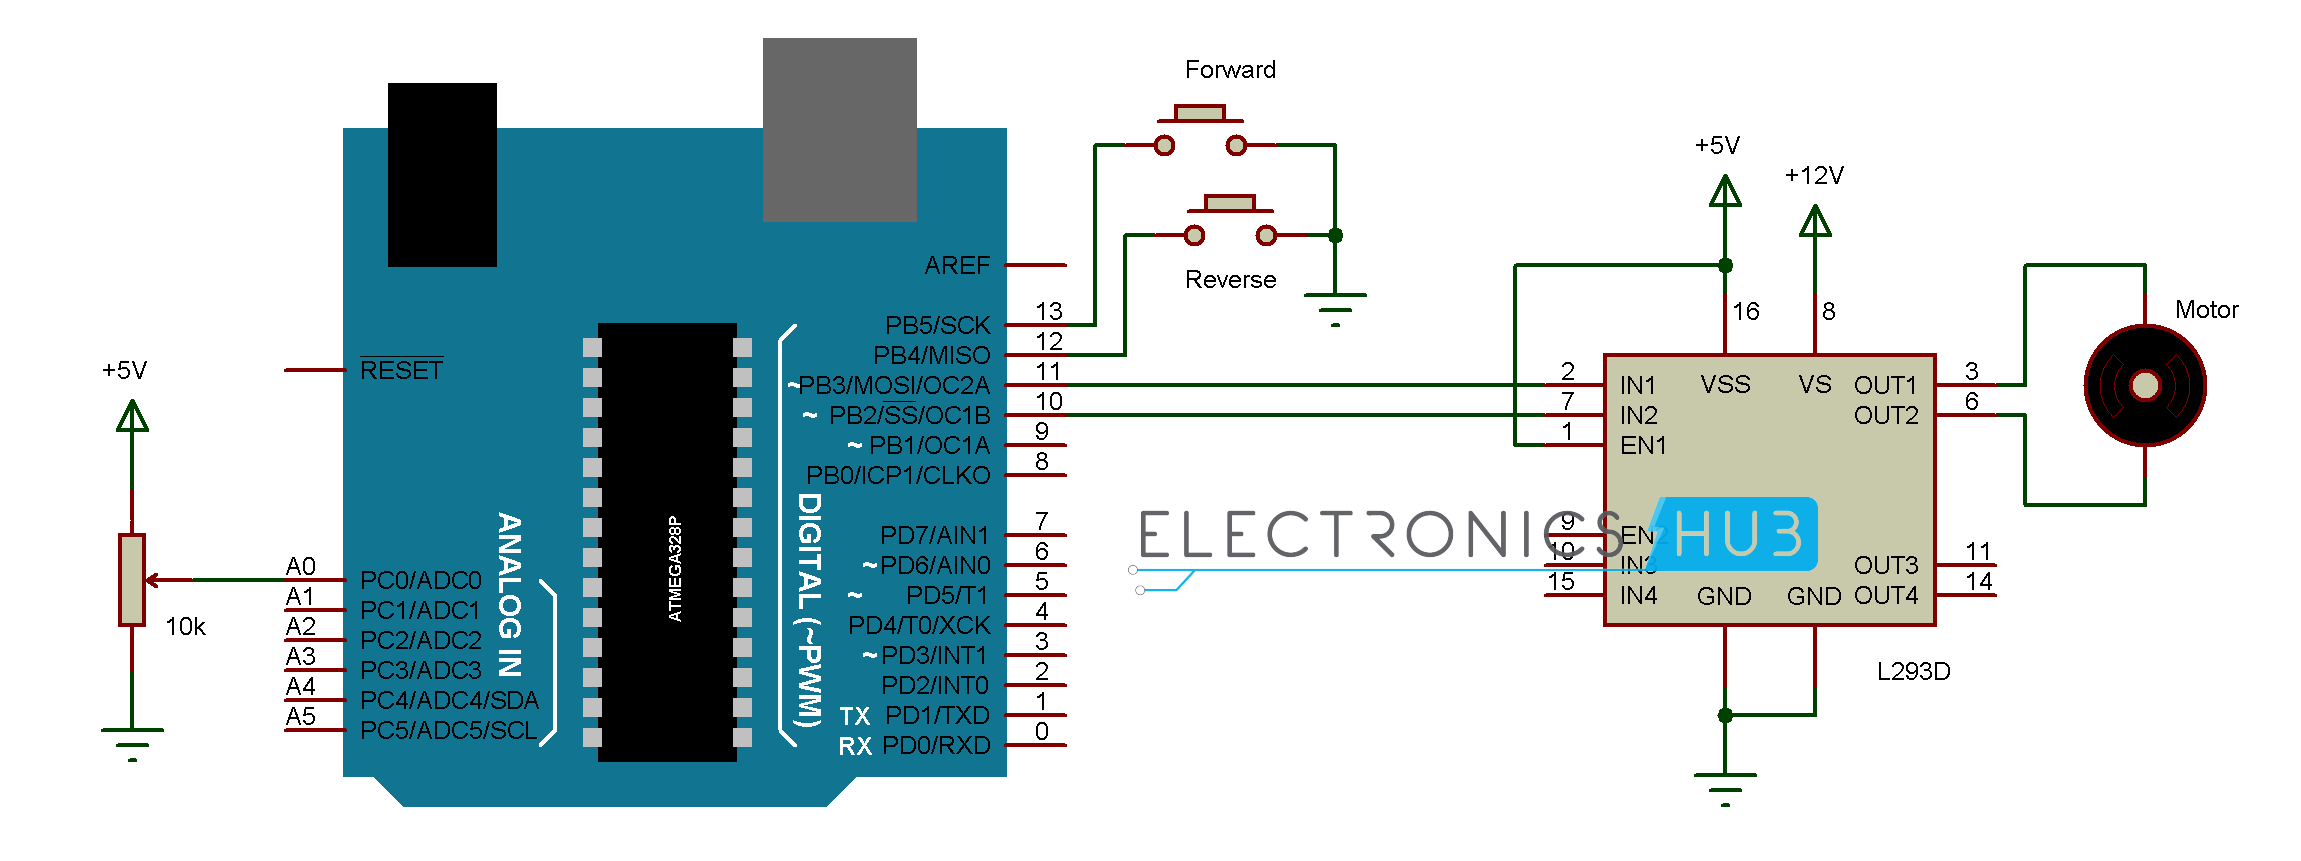 Dc Motor Control With Arduino Double Switch Wiring Diagram Circuit